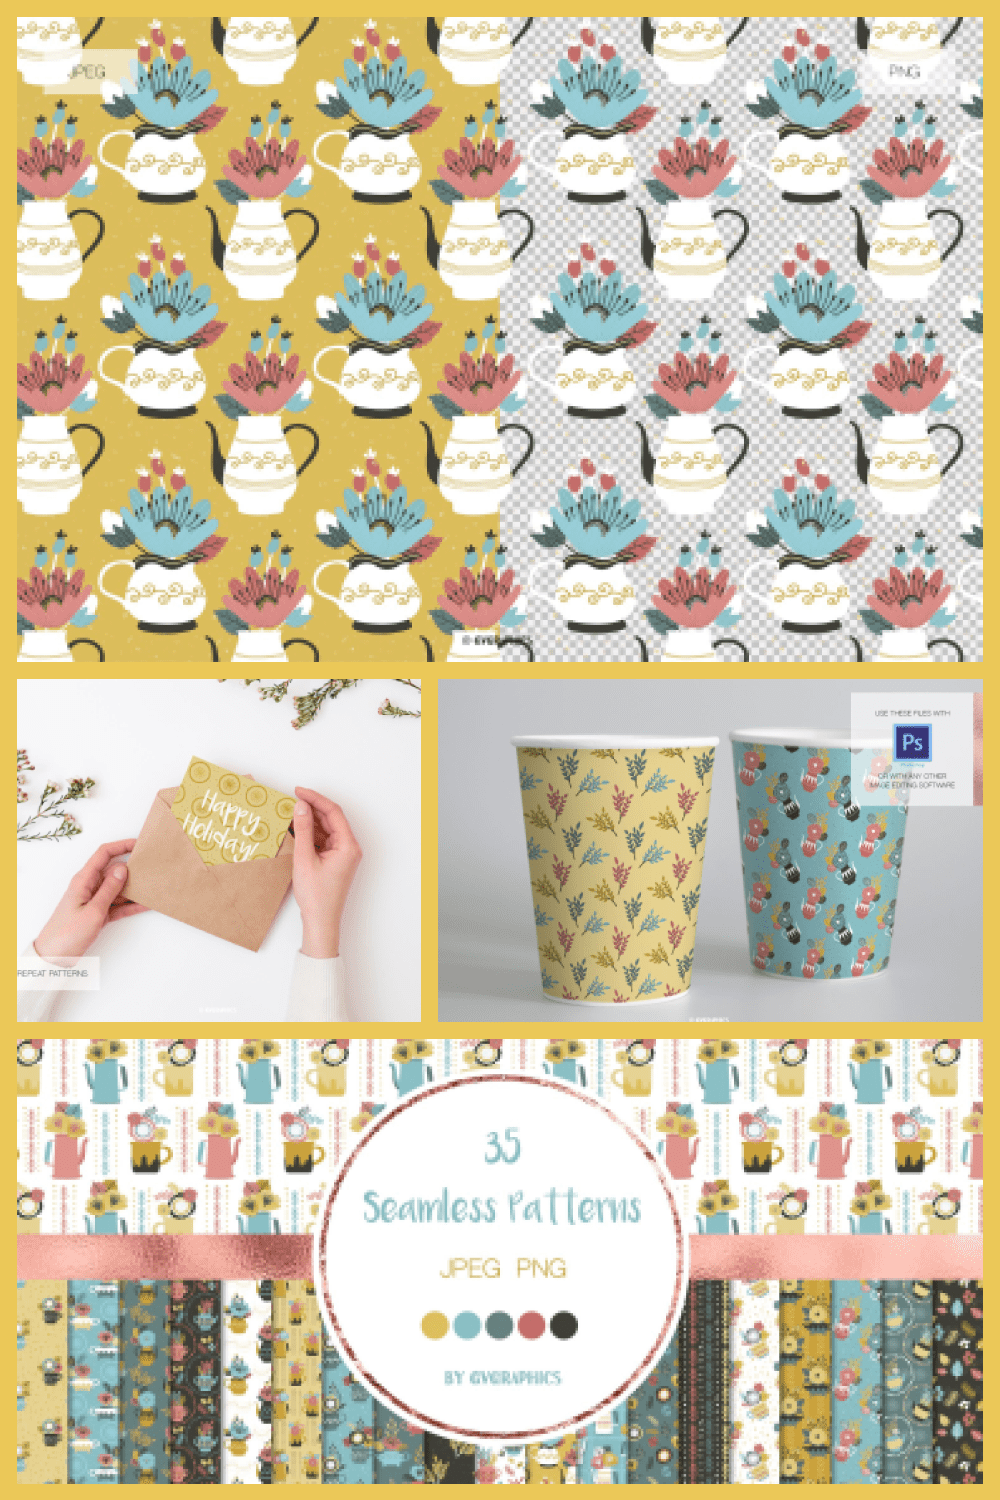 Flowers and Time for Teapots Patterns - MasterBundles - Pinterest Collage Image.